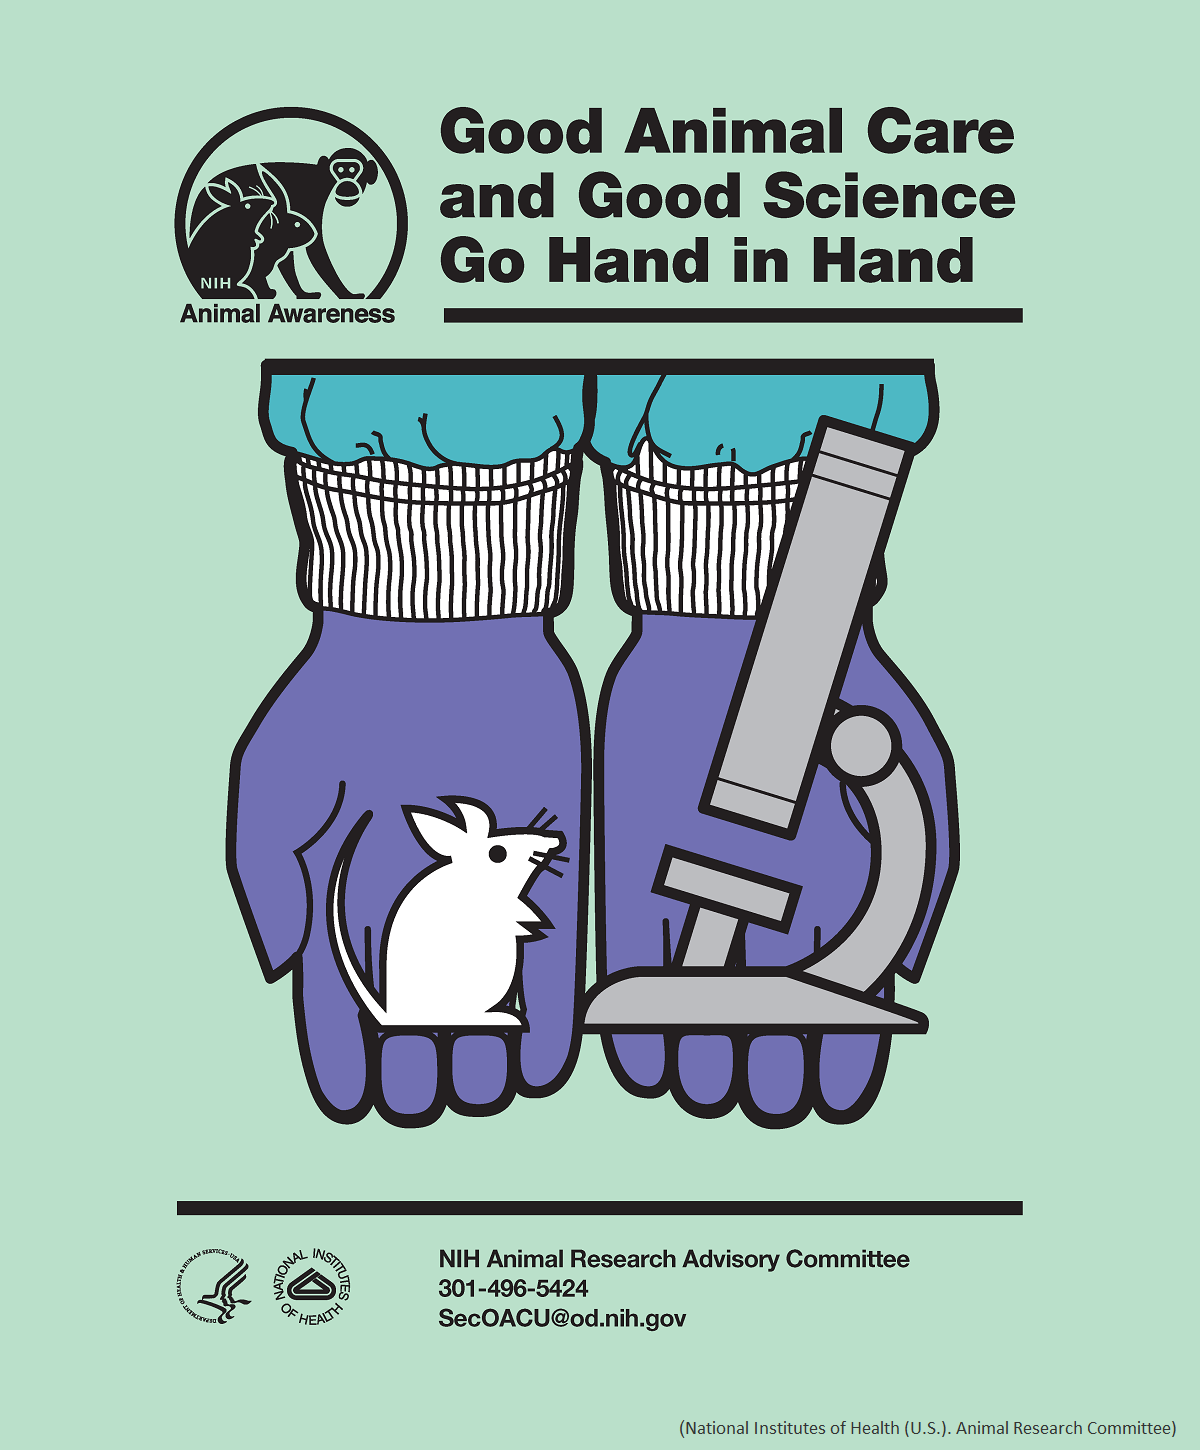 Good animal care and good science go hand in hand